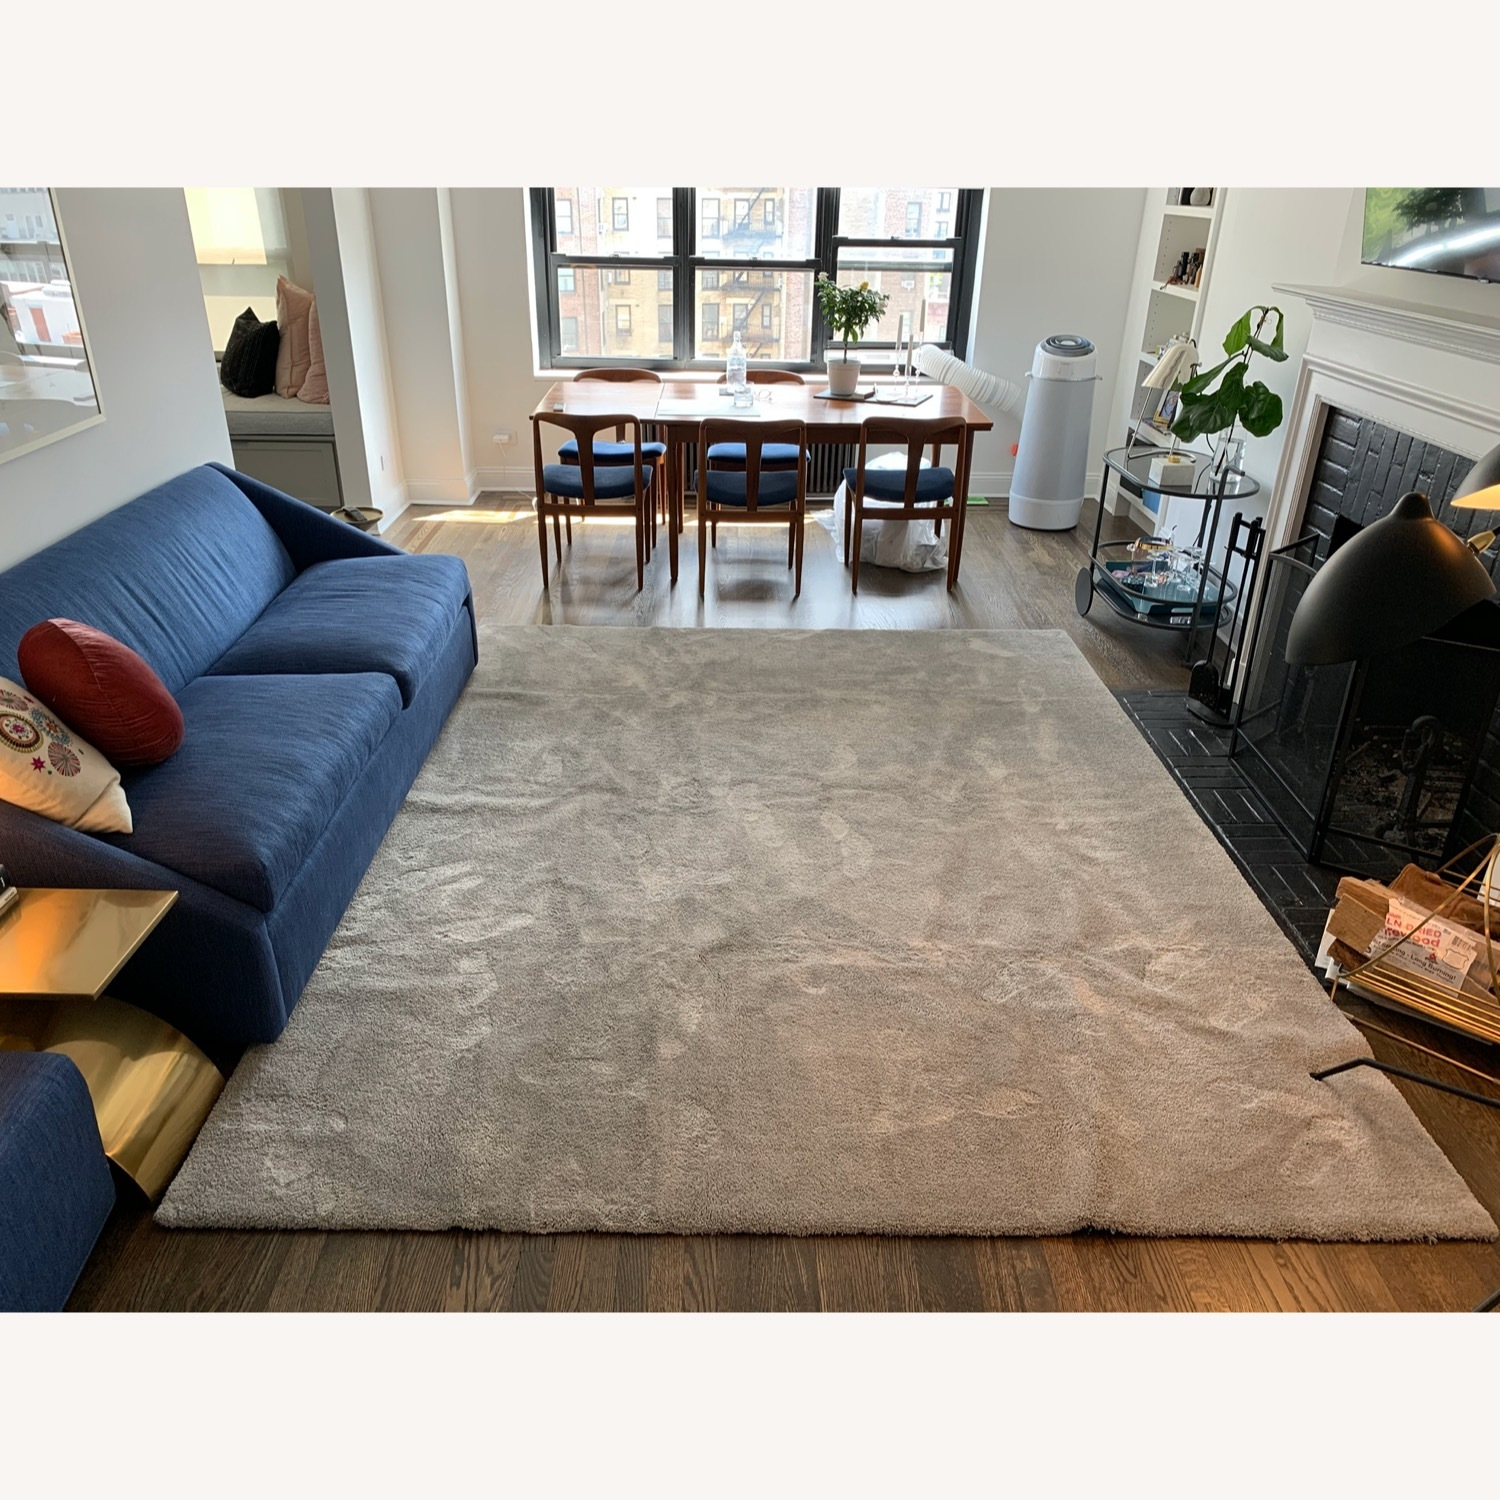 Touch Grey Area Rug - image-0